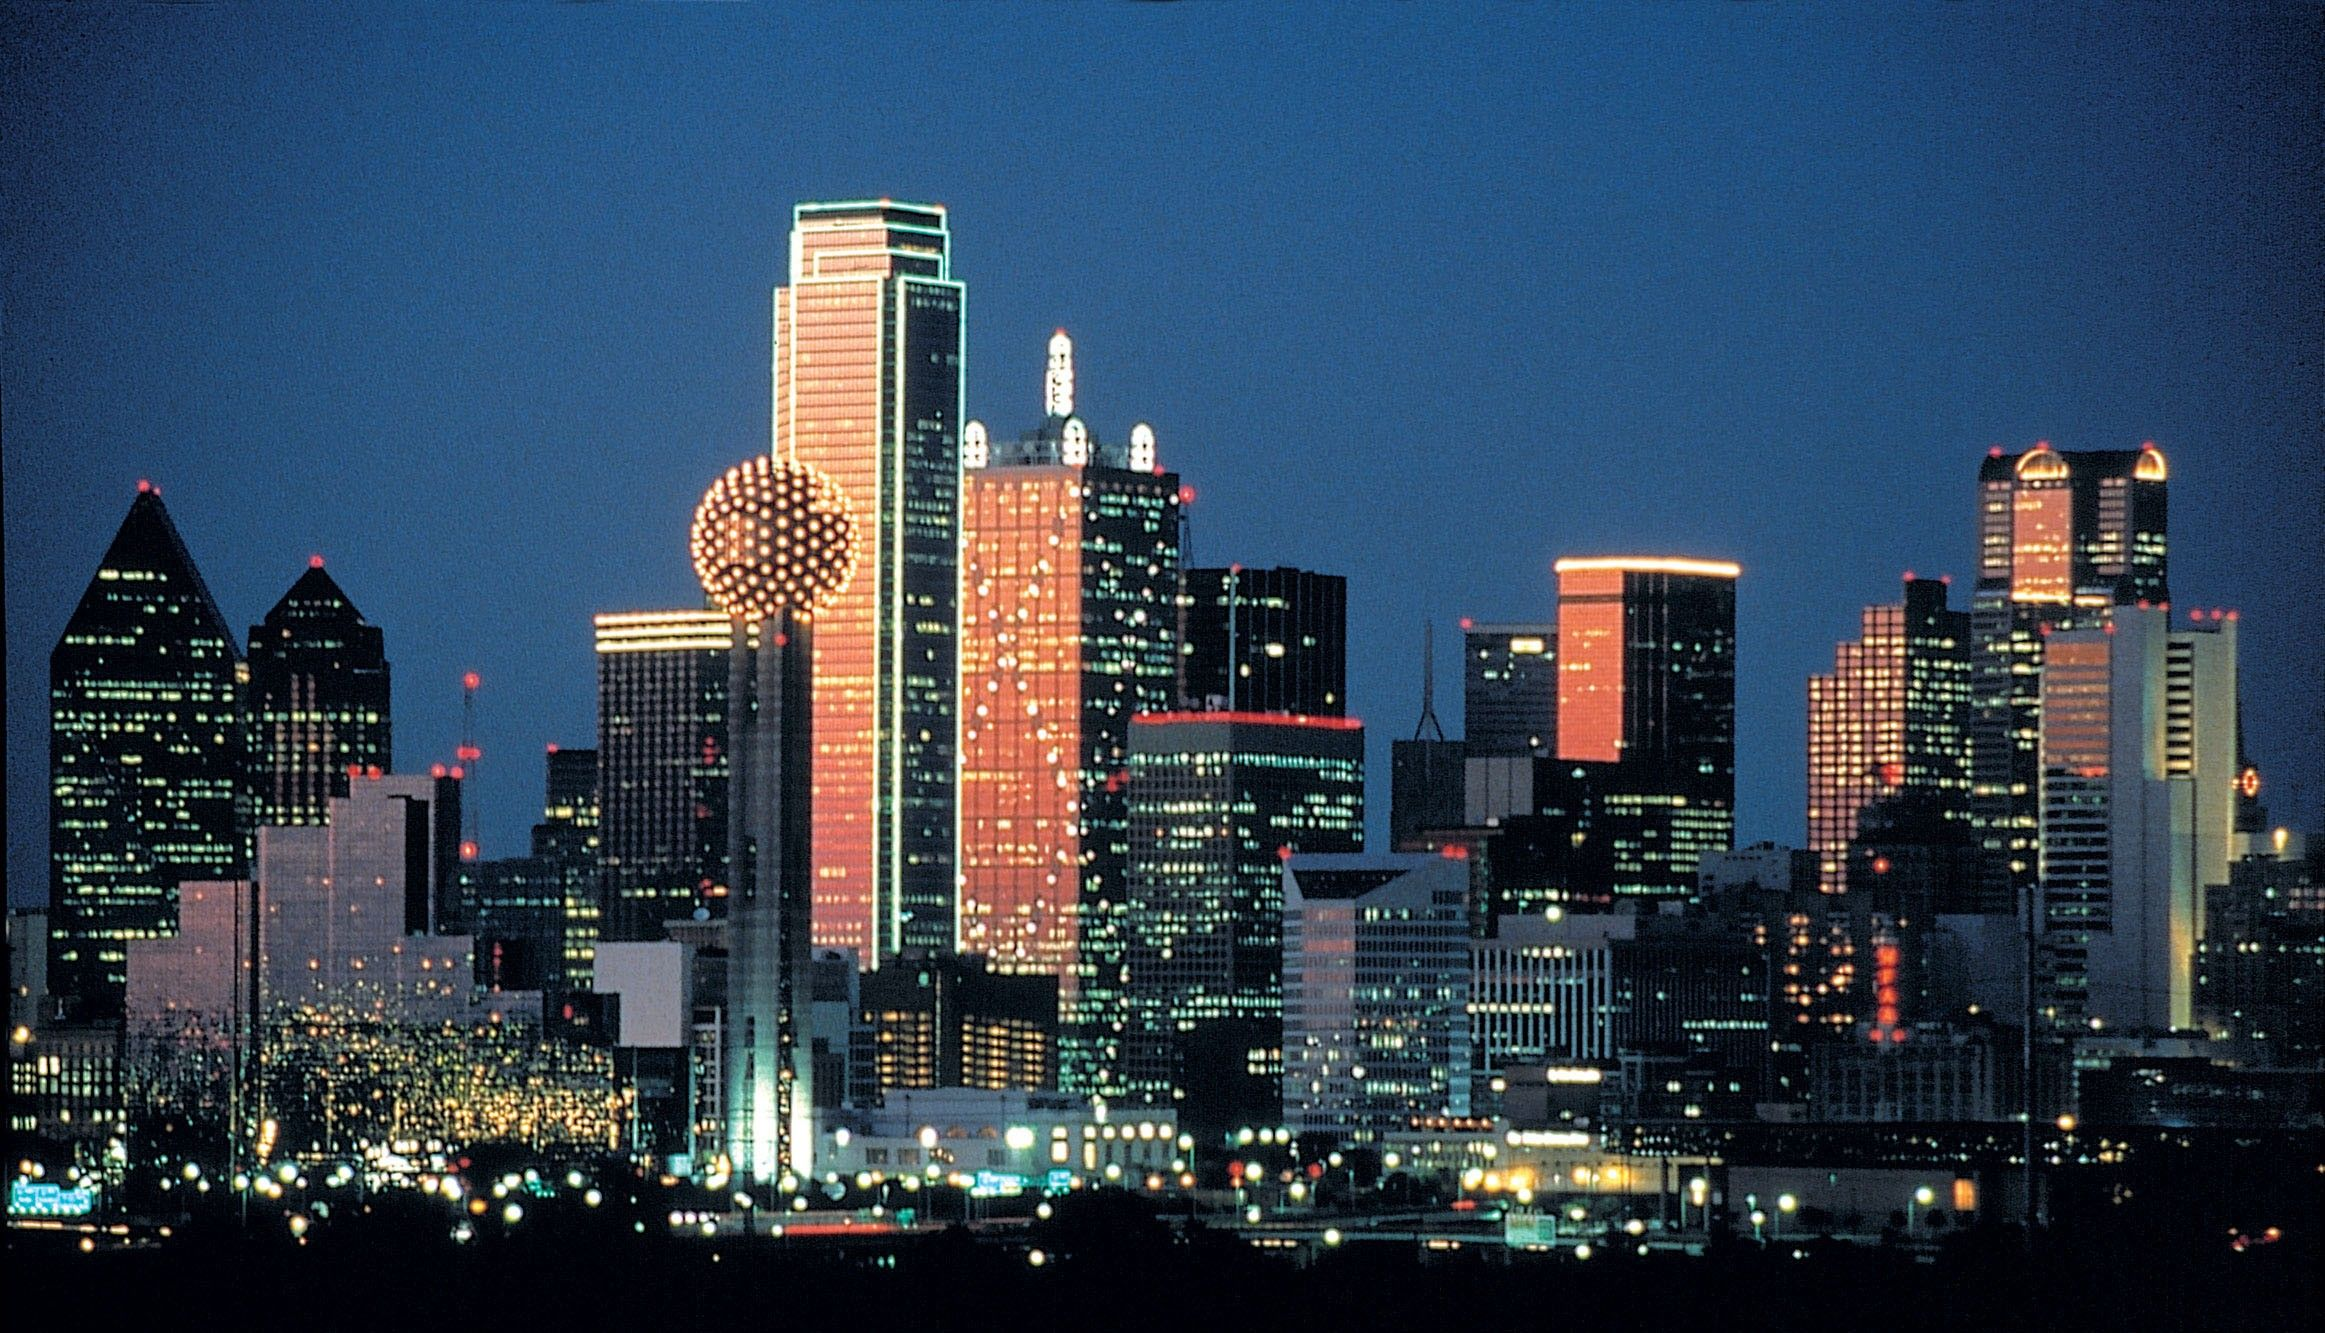 Dallas Tx My Home Sweet Home And A Skyline I Miss Seeing Used To Have A View Of That Skyline Wh Dallas Skyline Visit Dallas Dallas Attractions